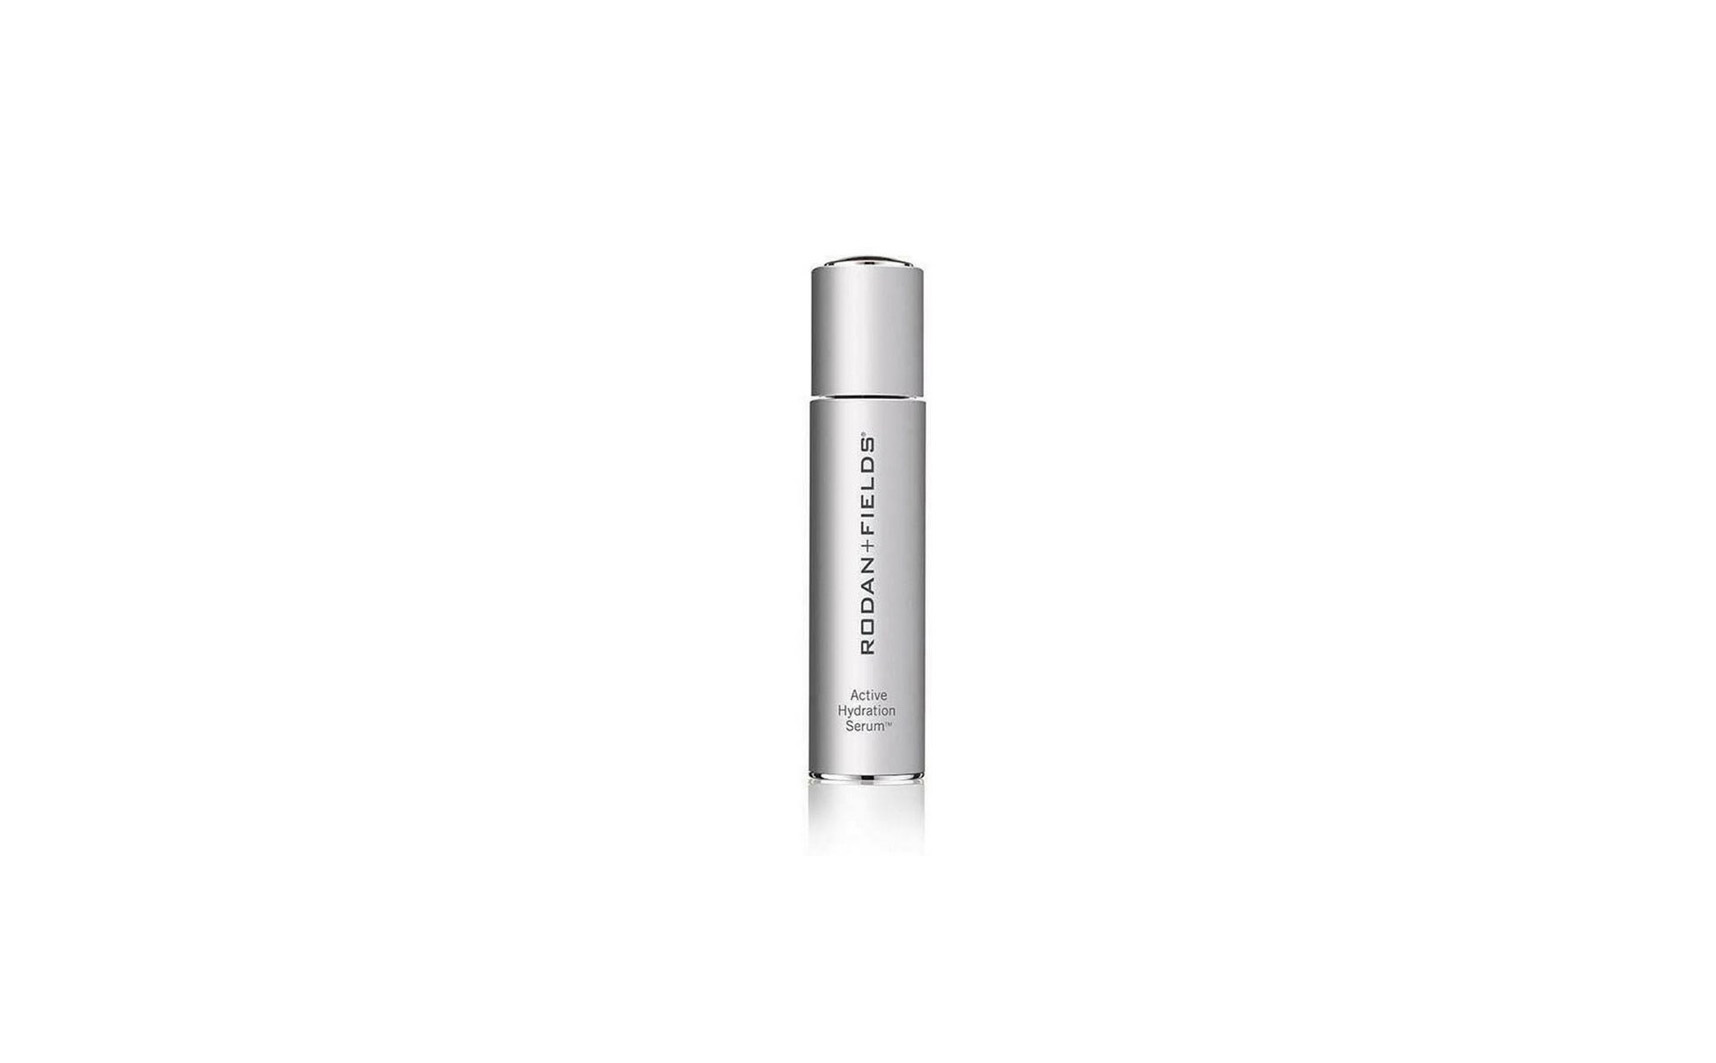 Rodan + Fields Active Hydration Serum